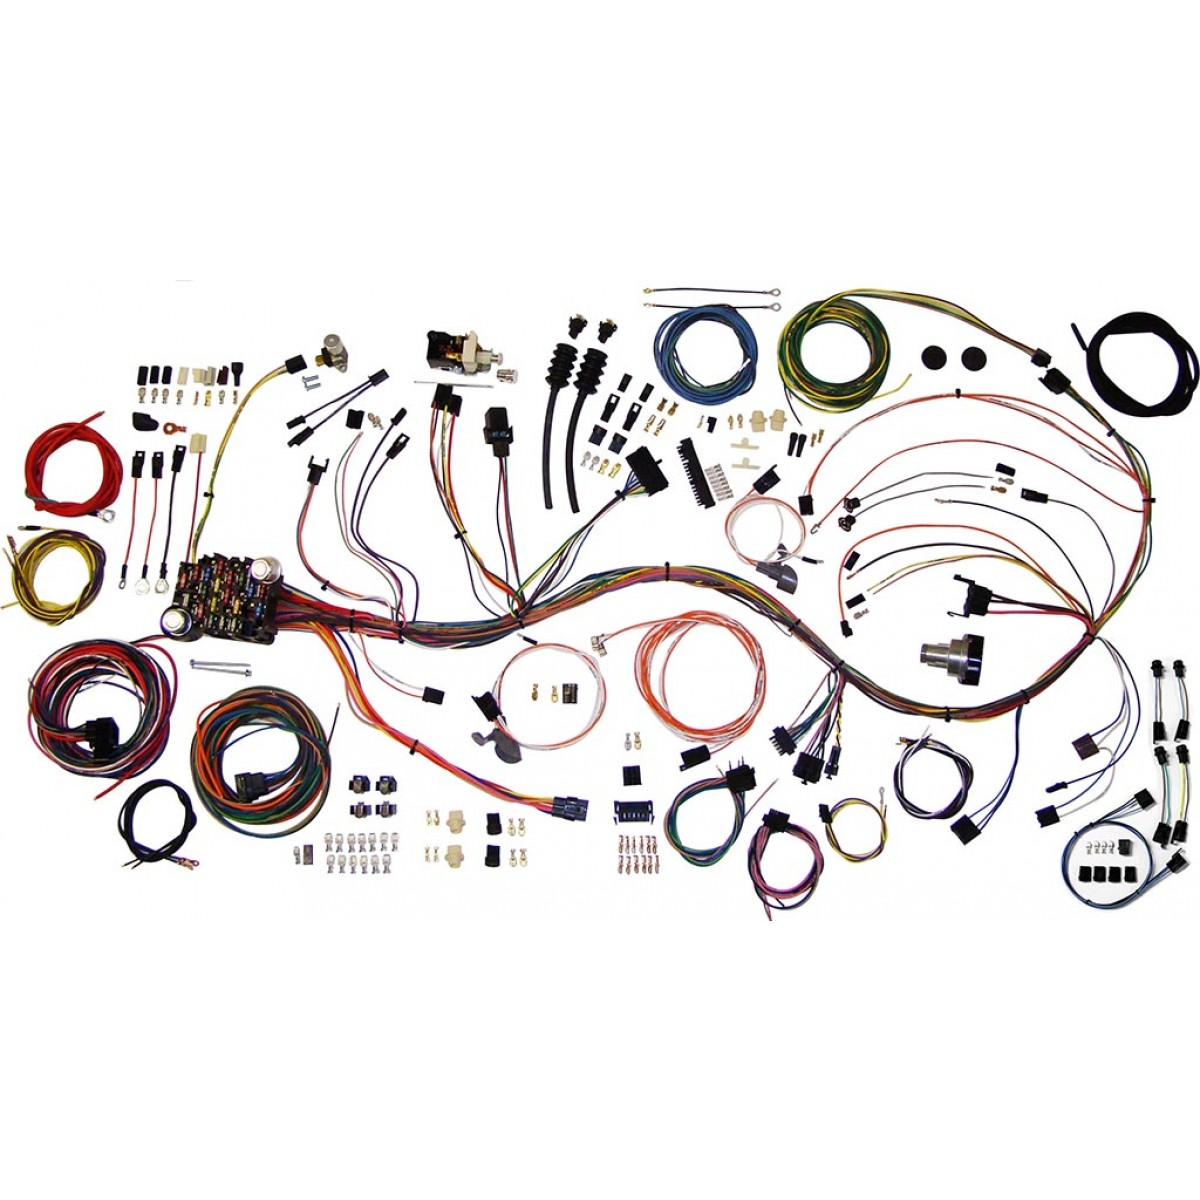 1967 1968 Chevy C10 Truck Wiring Harness C10 Wiring Harness Kit